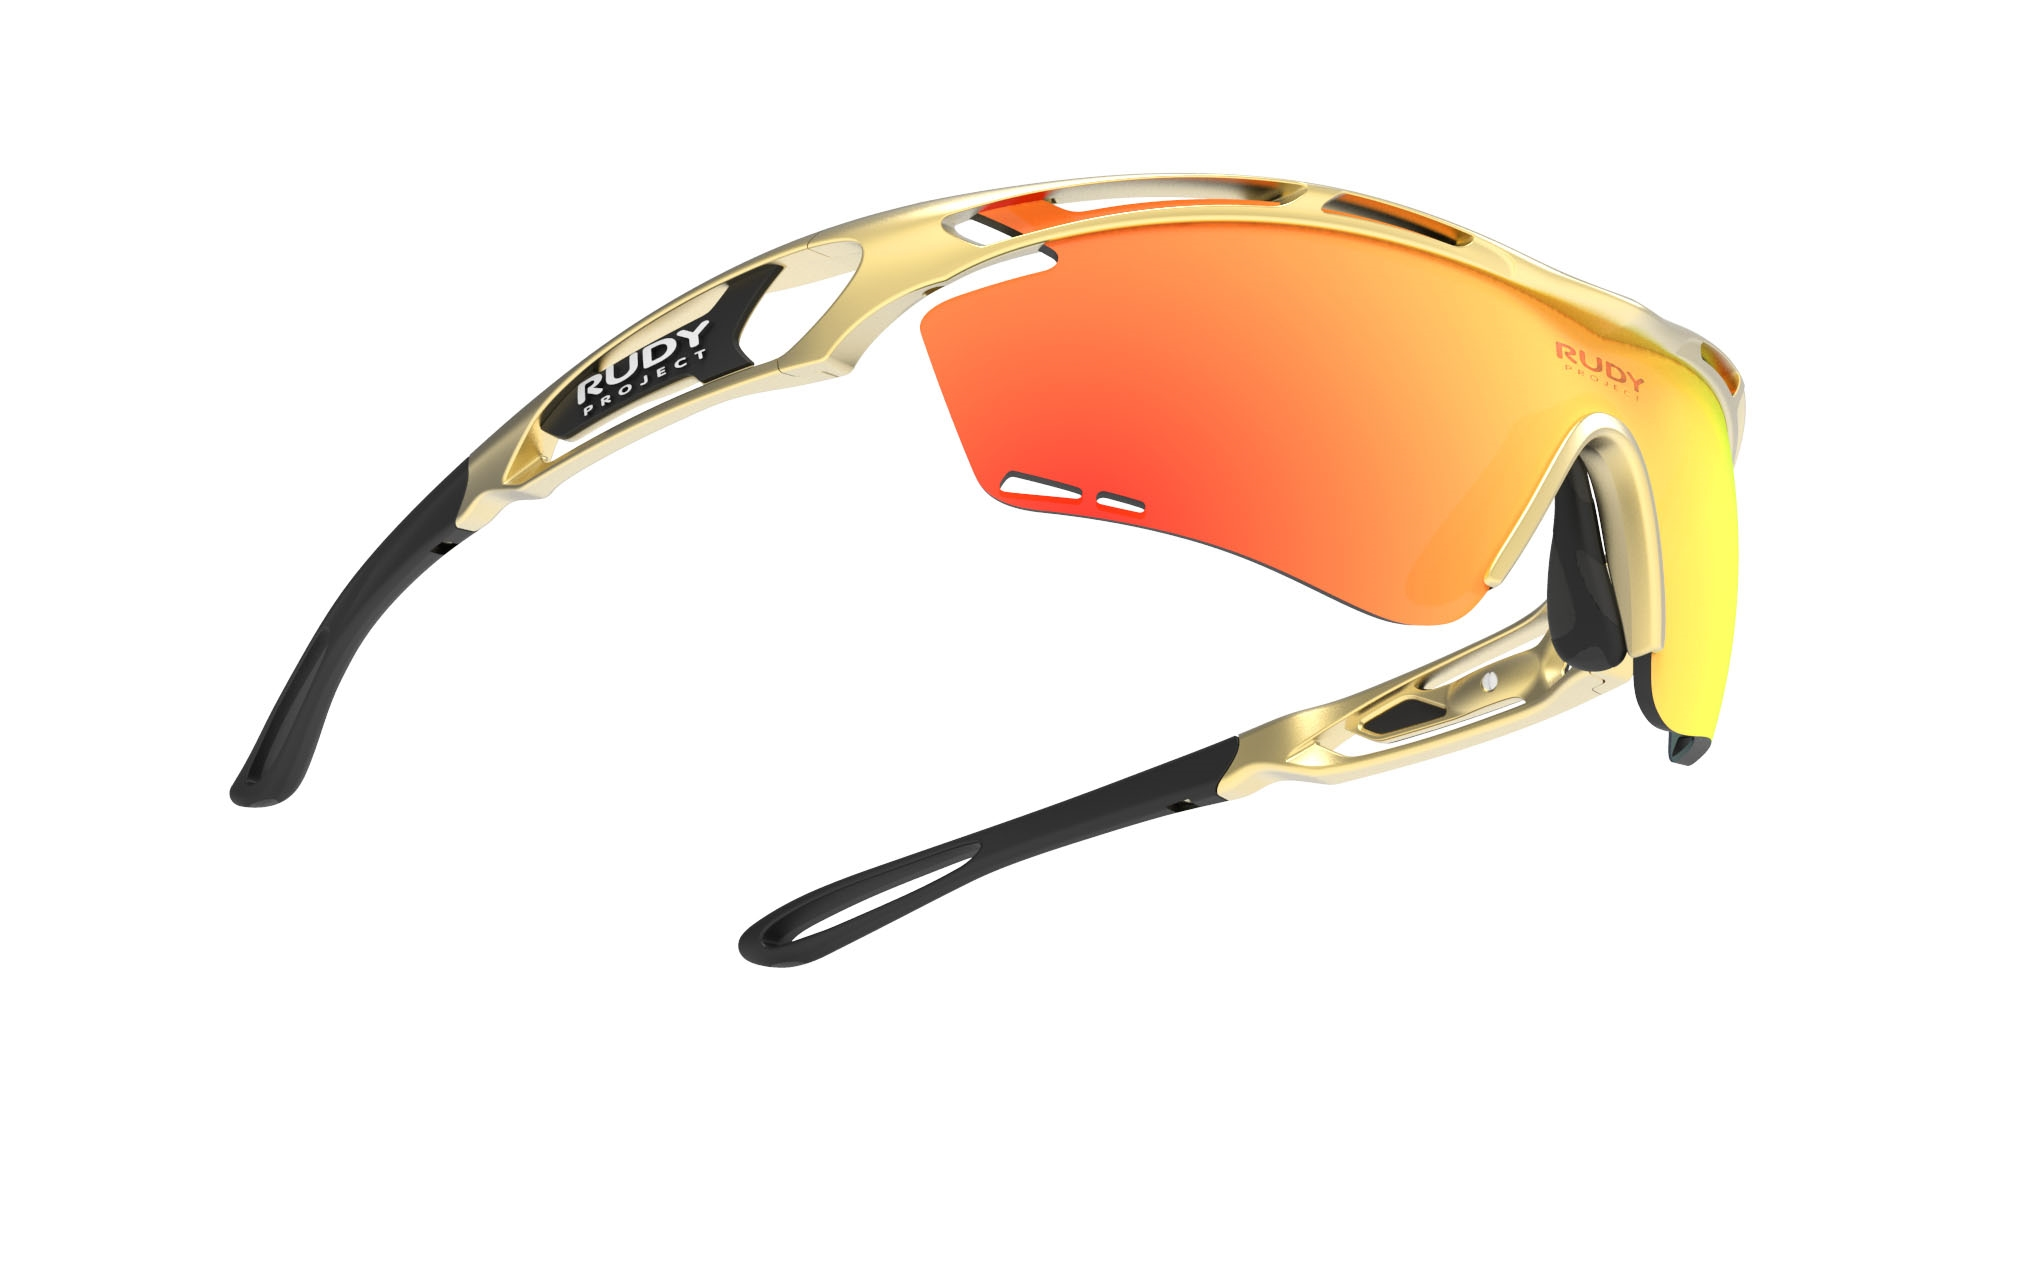 51d383ac3f Performance Eyewear Tralyx - Rudy Project